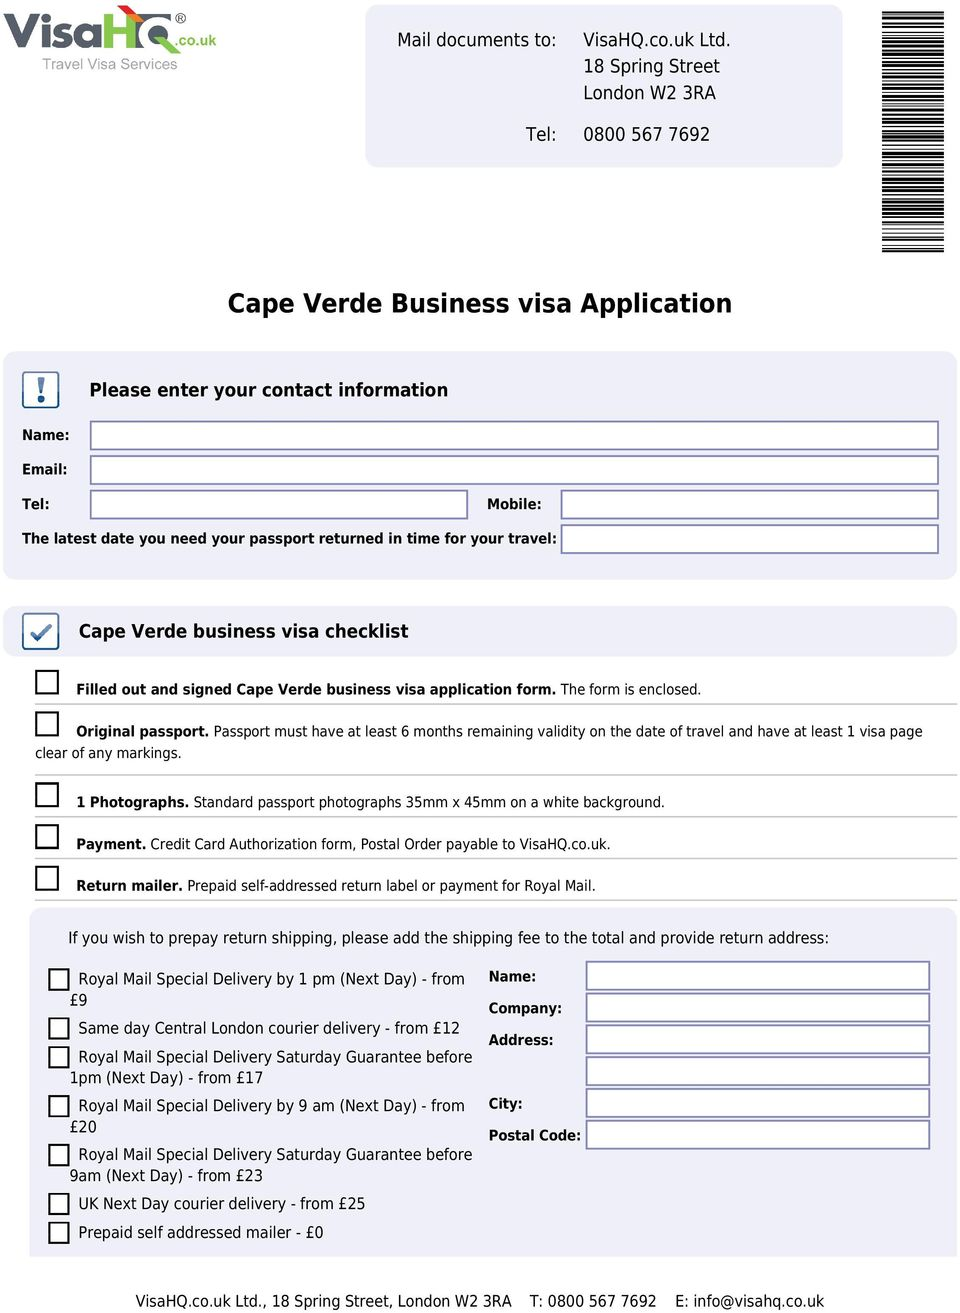 Cape Verde Business Visa Application Pdf Free Download